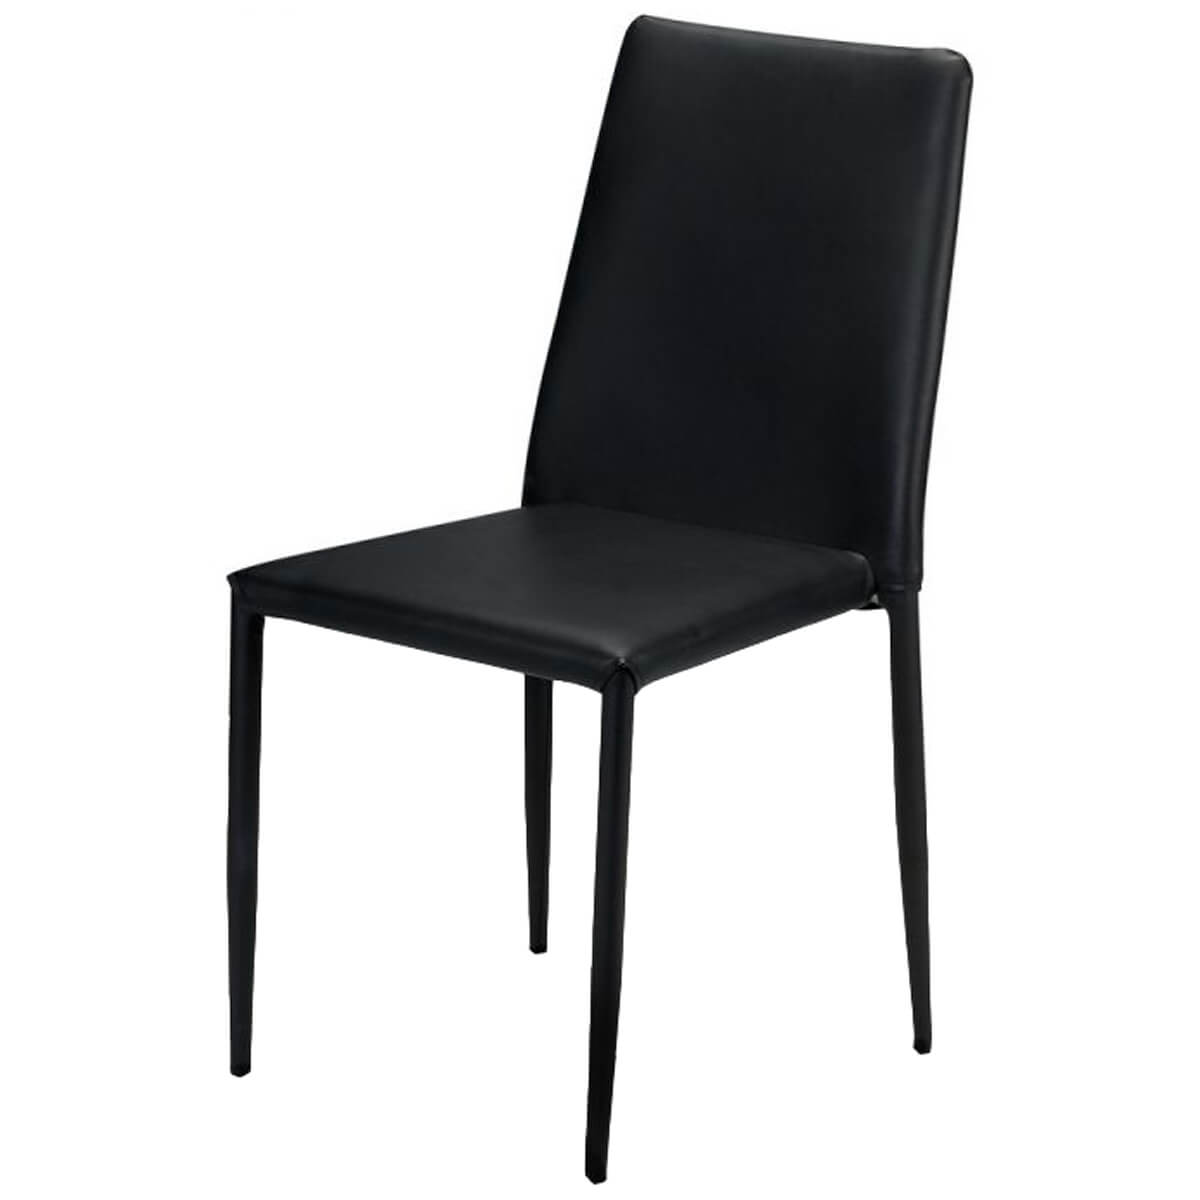 Stacking Dining Chairs Jazz Black Stackable Dining Chairs Dining Room Furniture